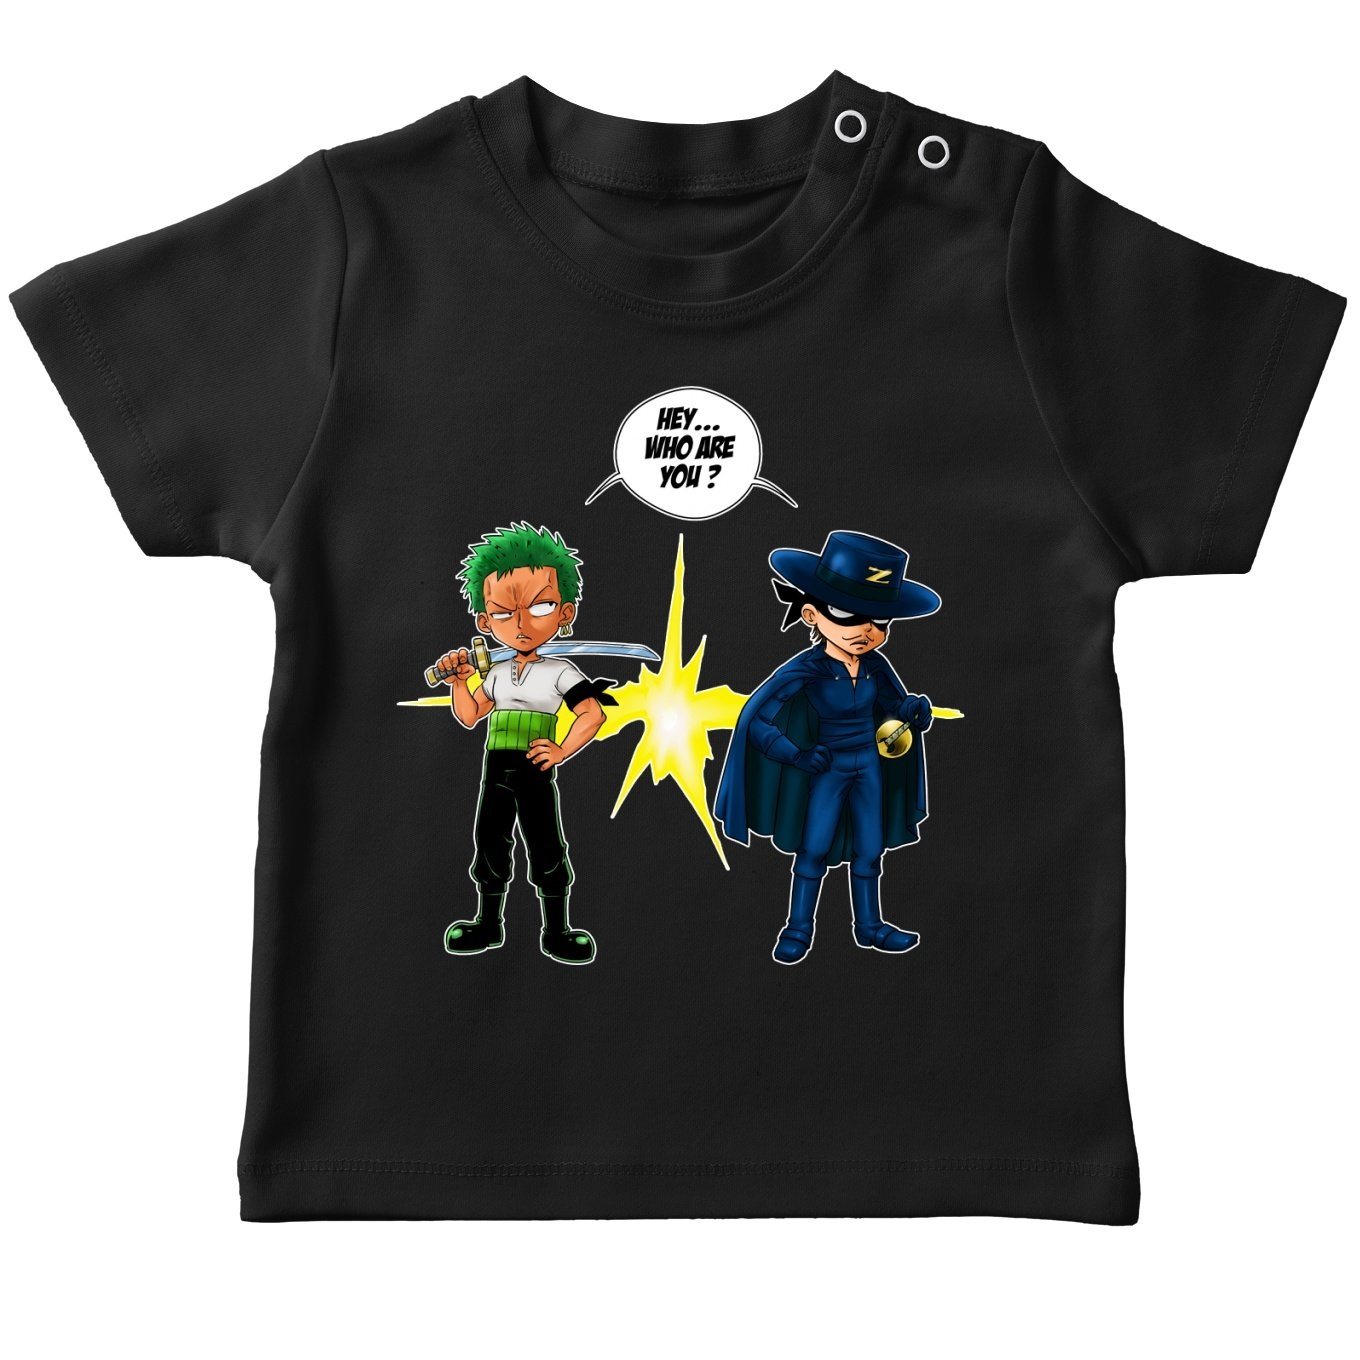 Okiwoki Funny One Piece Black Baby\'s T-Shirt - Roronoa Zoro from Straw Hat Pirates Crew (One Piece Parody) (Ref:729)